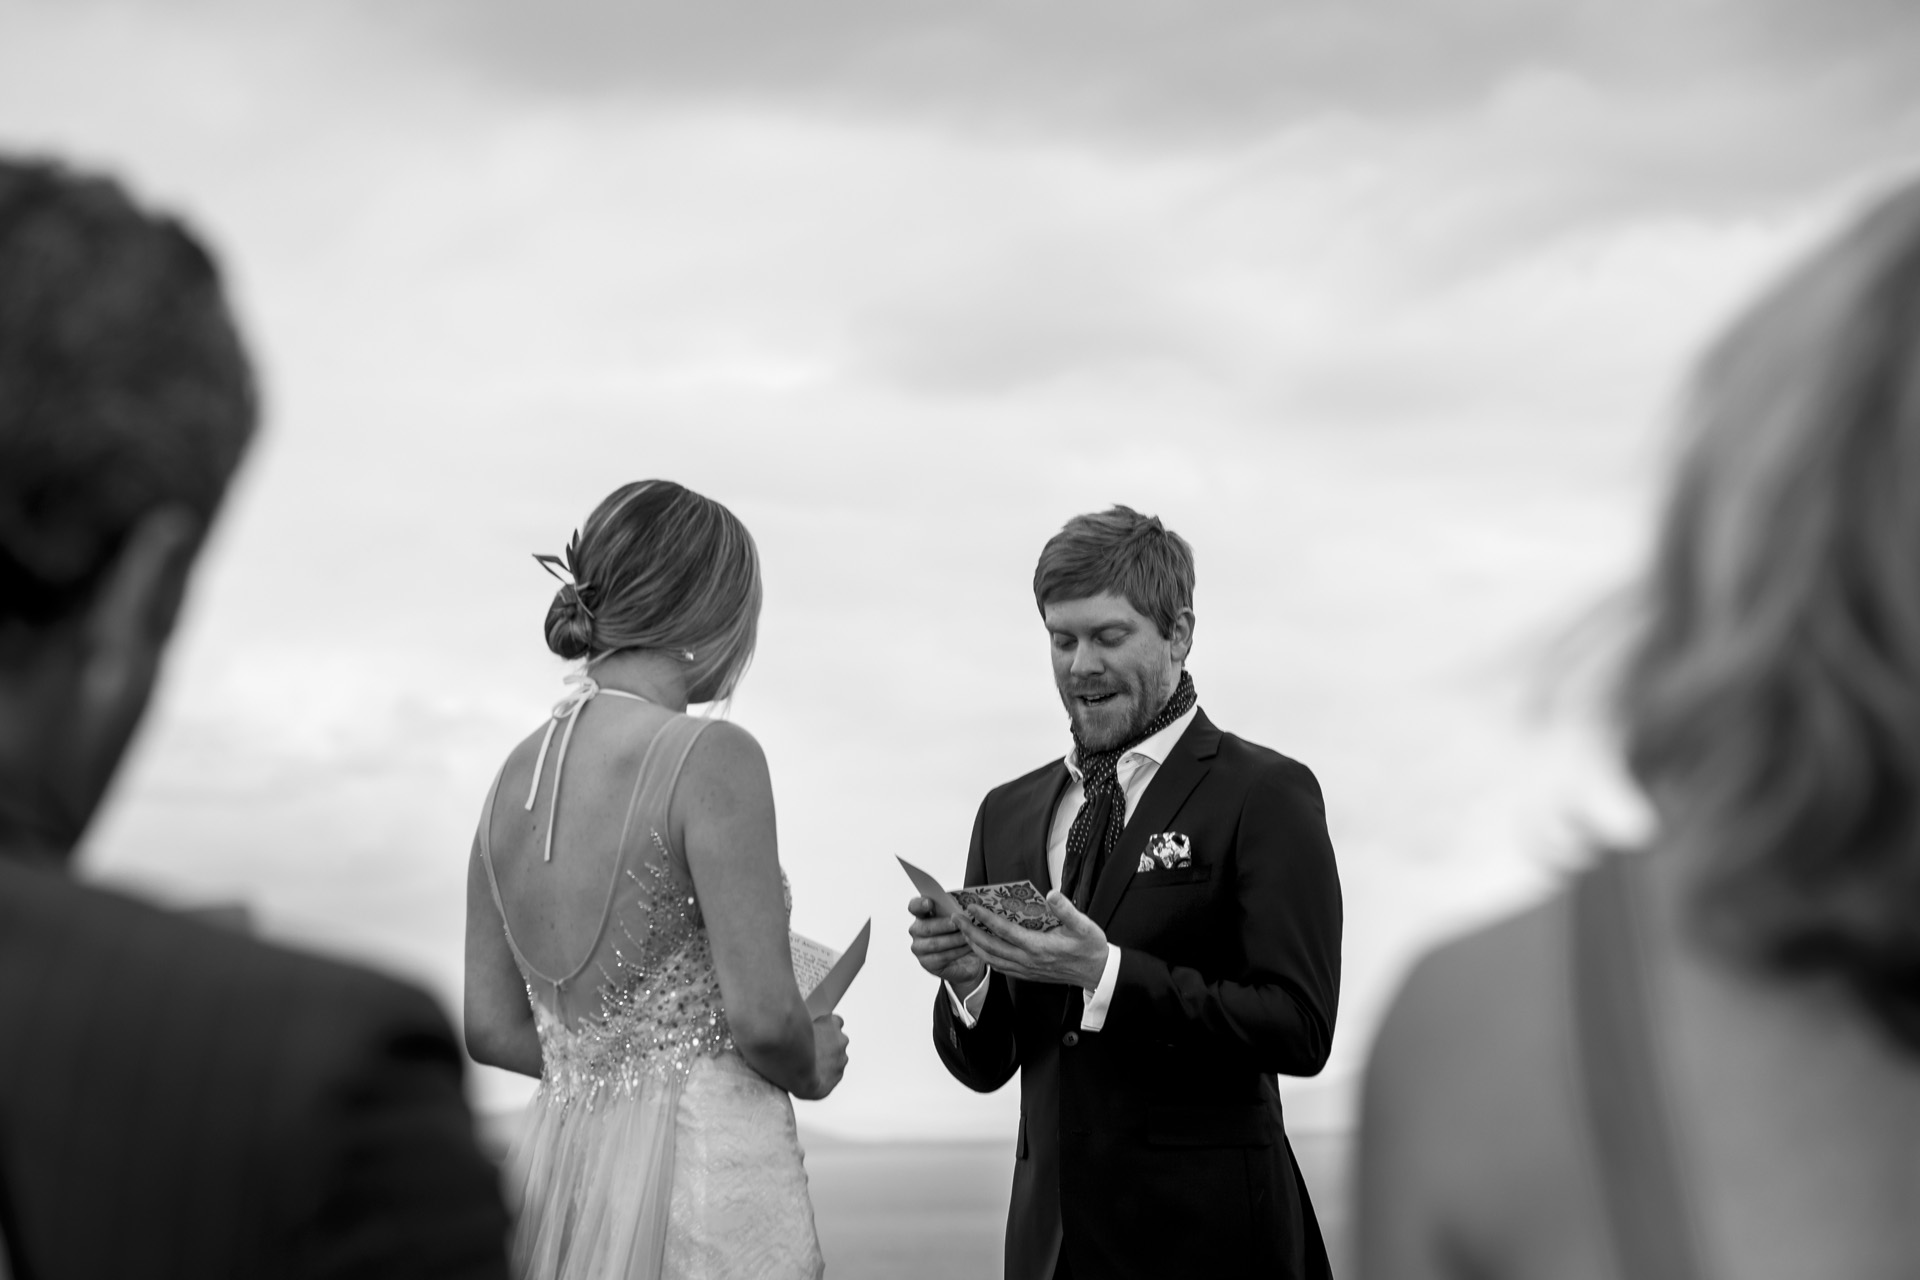 Geneva Lake Small Wedding Photography - Elopements | Wedding vows were very emotional and I focused on these moments